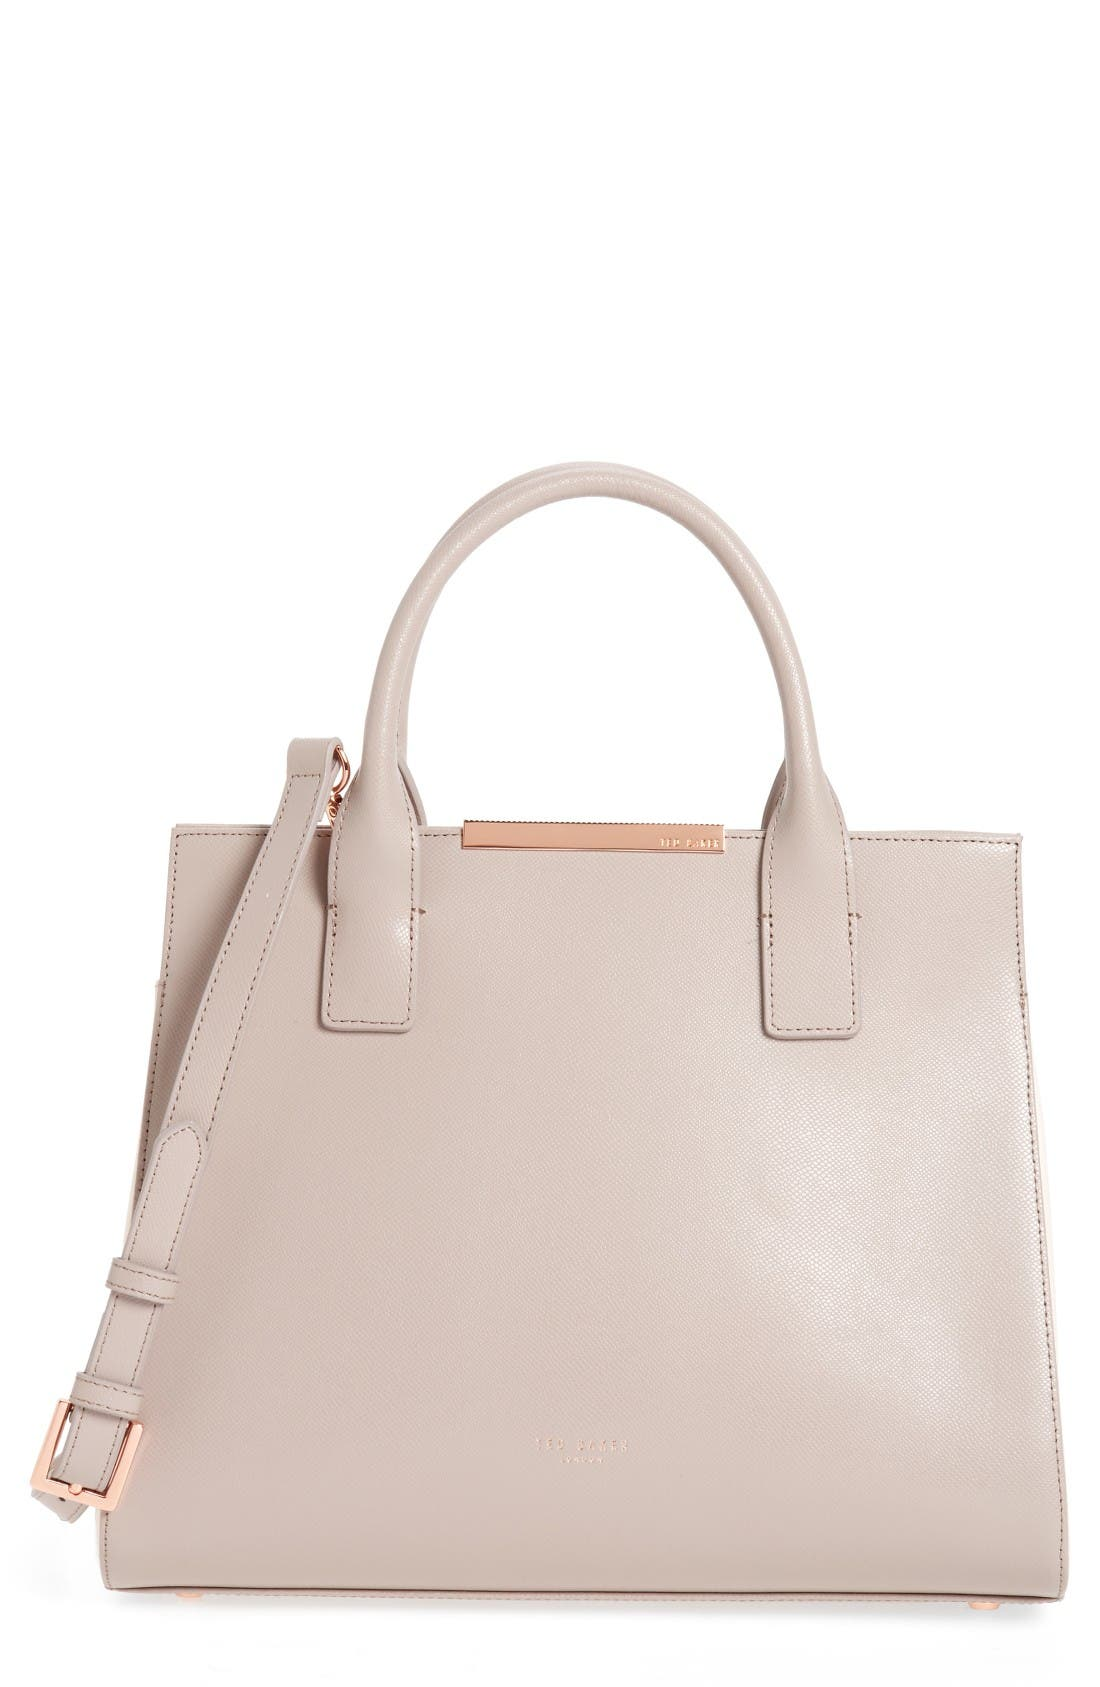 Alternate Image 1 Selected - Ted Baker London Mini Colorblock Leather Tote